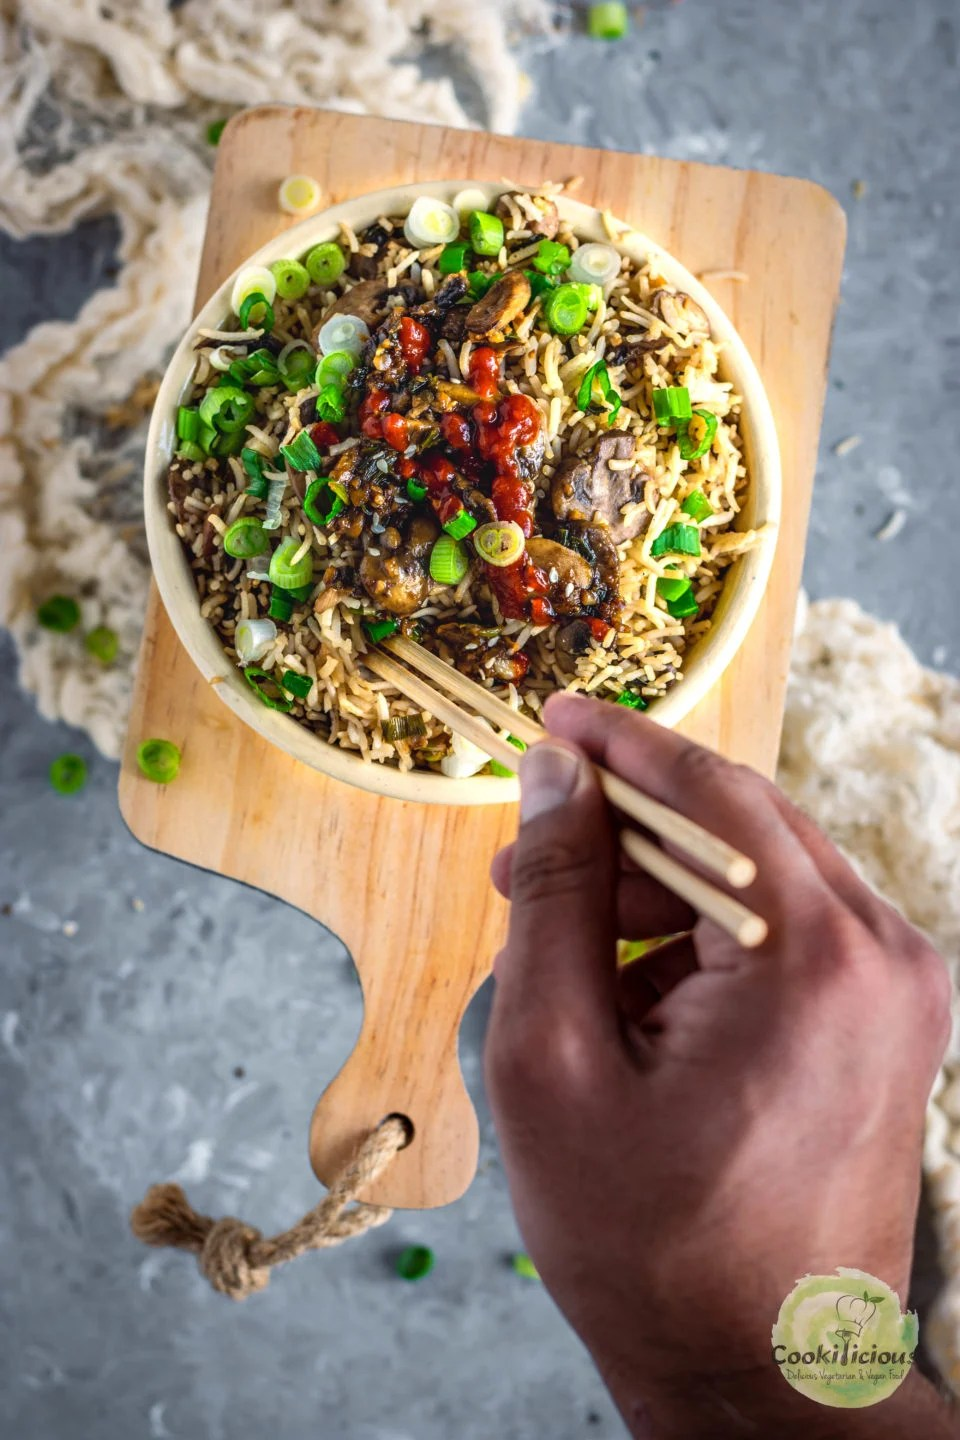 a hand holding chopsticks digging into a Japanese fried rice bowl